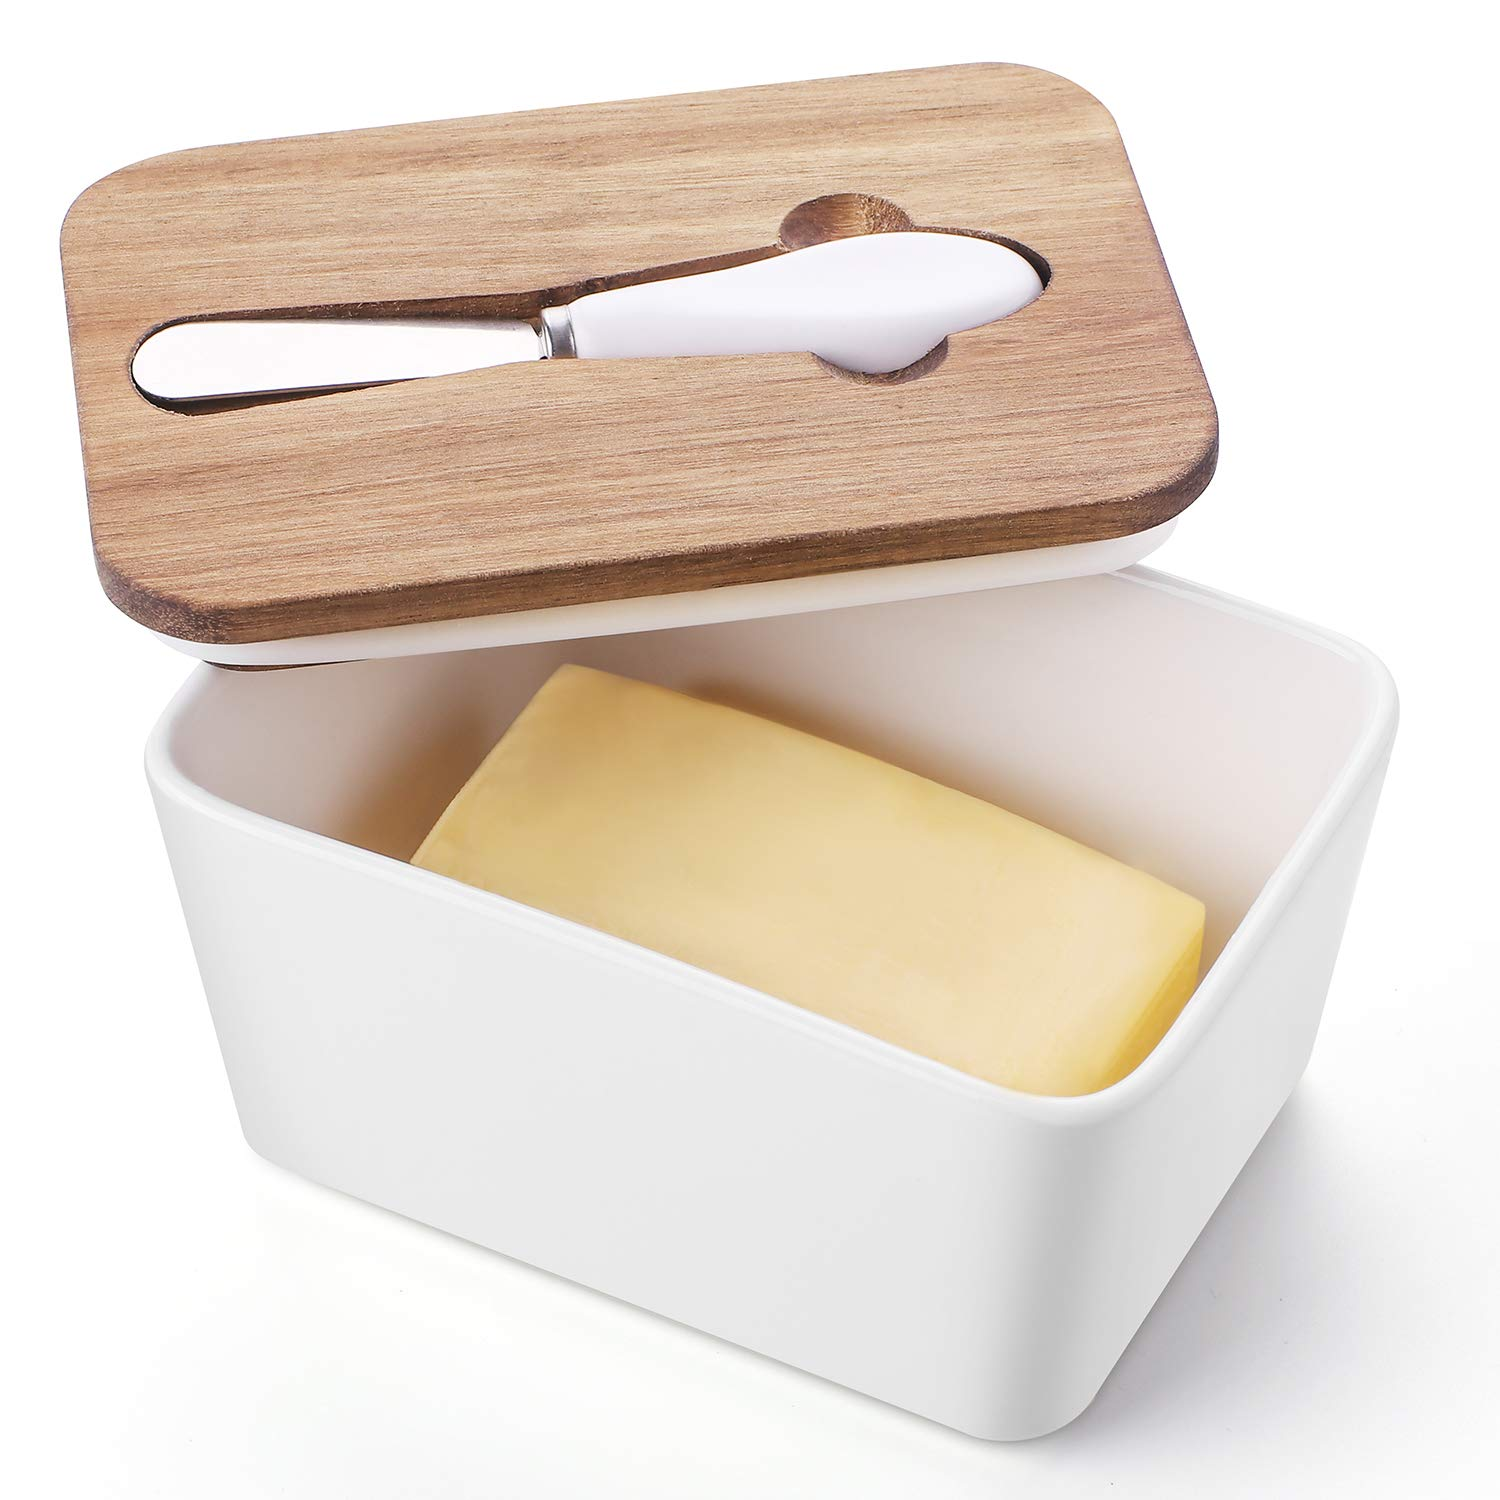 DOWAN Large Butter Dish, Butter Keeper with Healthy Wooden Lid and Steel Knife, Butter Storage Container for the Tabletop, Porcelain, White